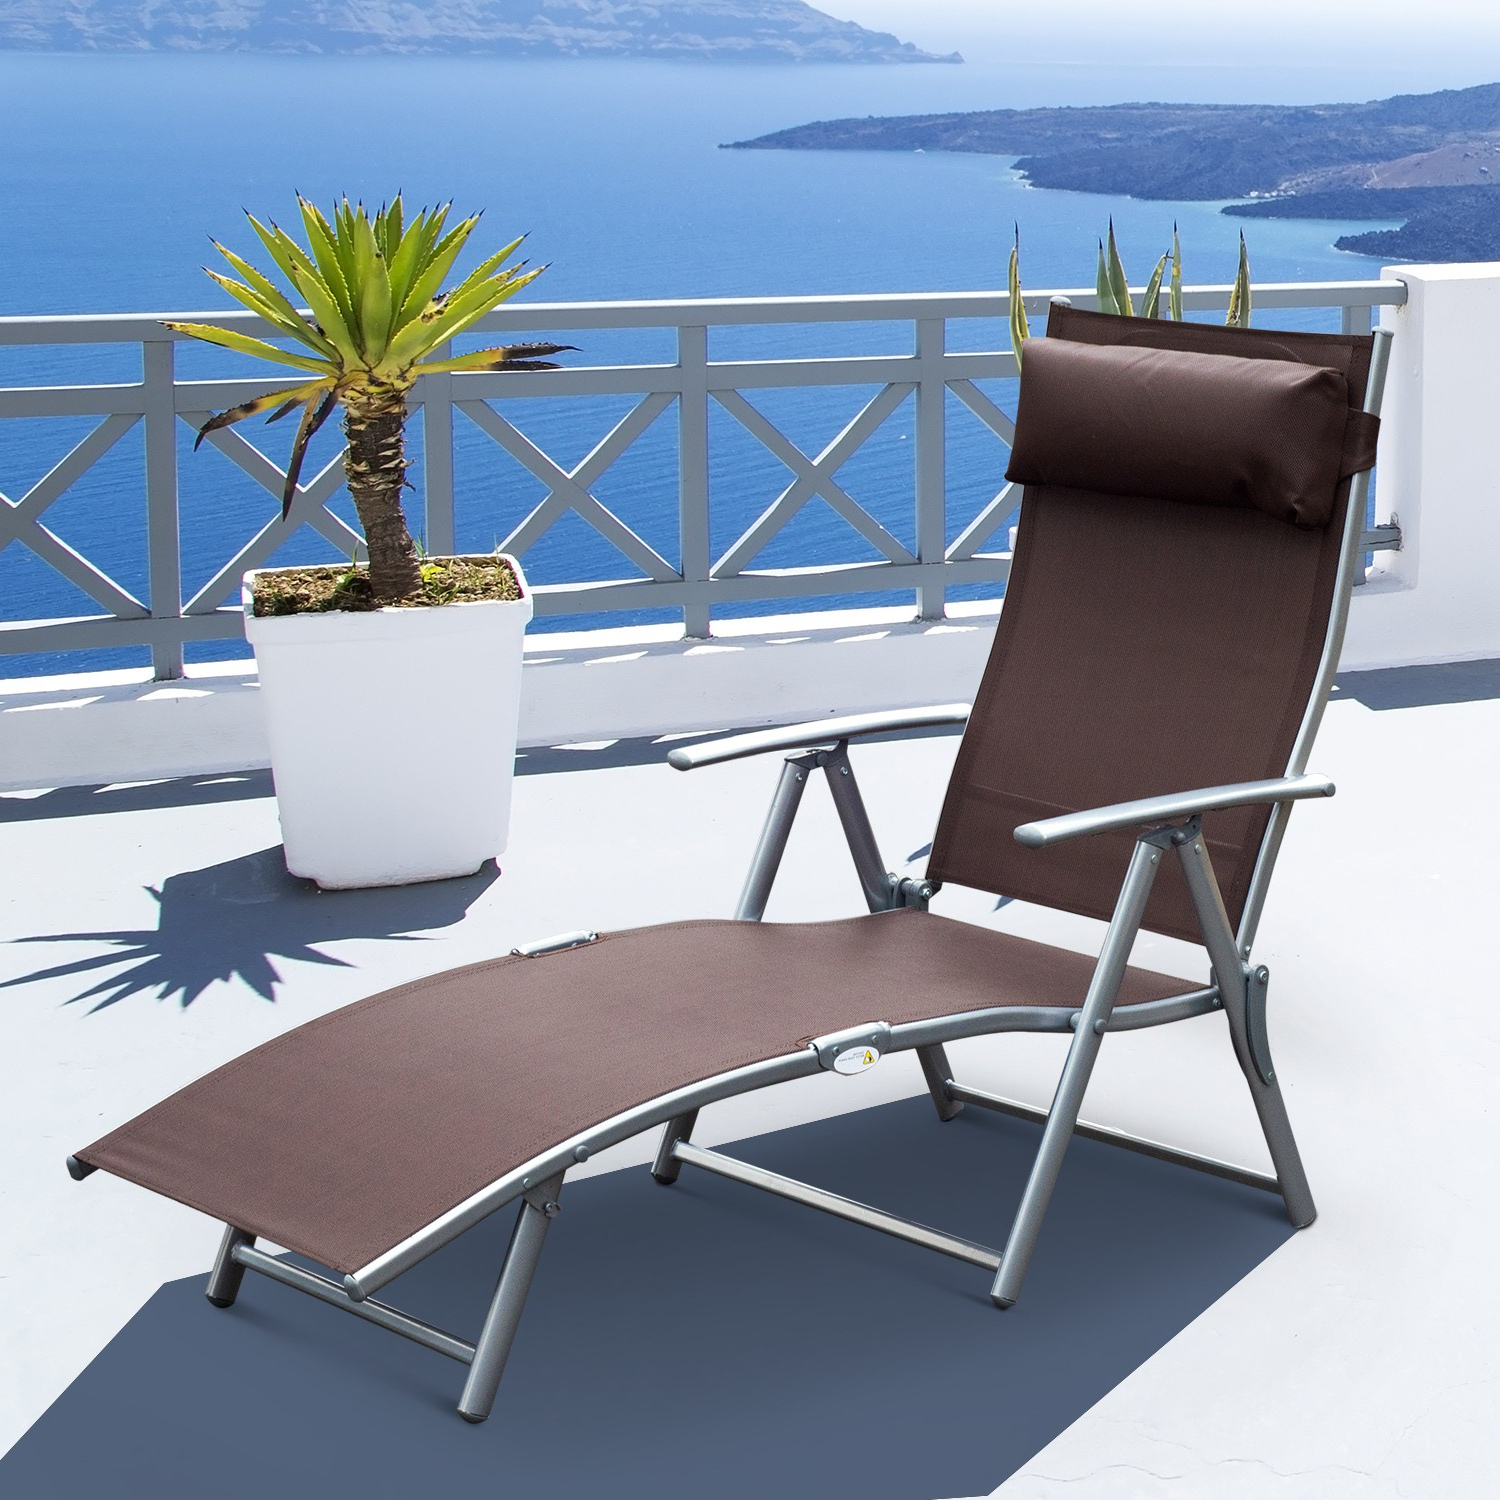 Steel Sling Fabric Outdoor Folding Chaise Lounges With Regard To Favorite Outsunny Steel Sling Fabric Outdoor Folding Chaise Lounge (View 22 of 25)